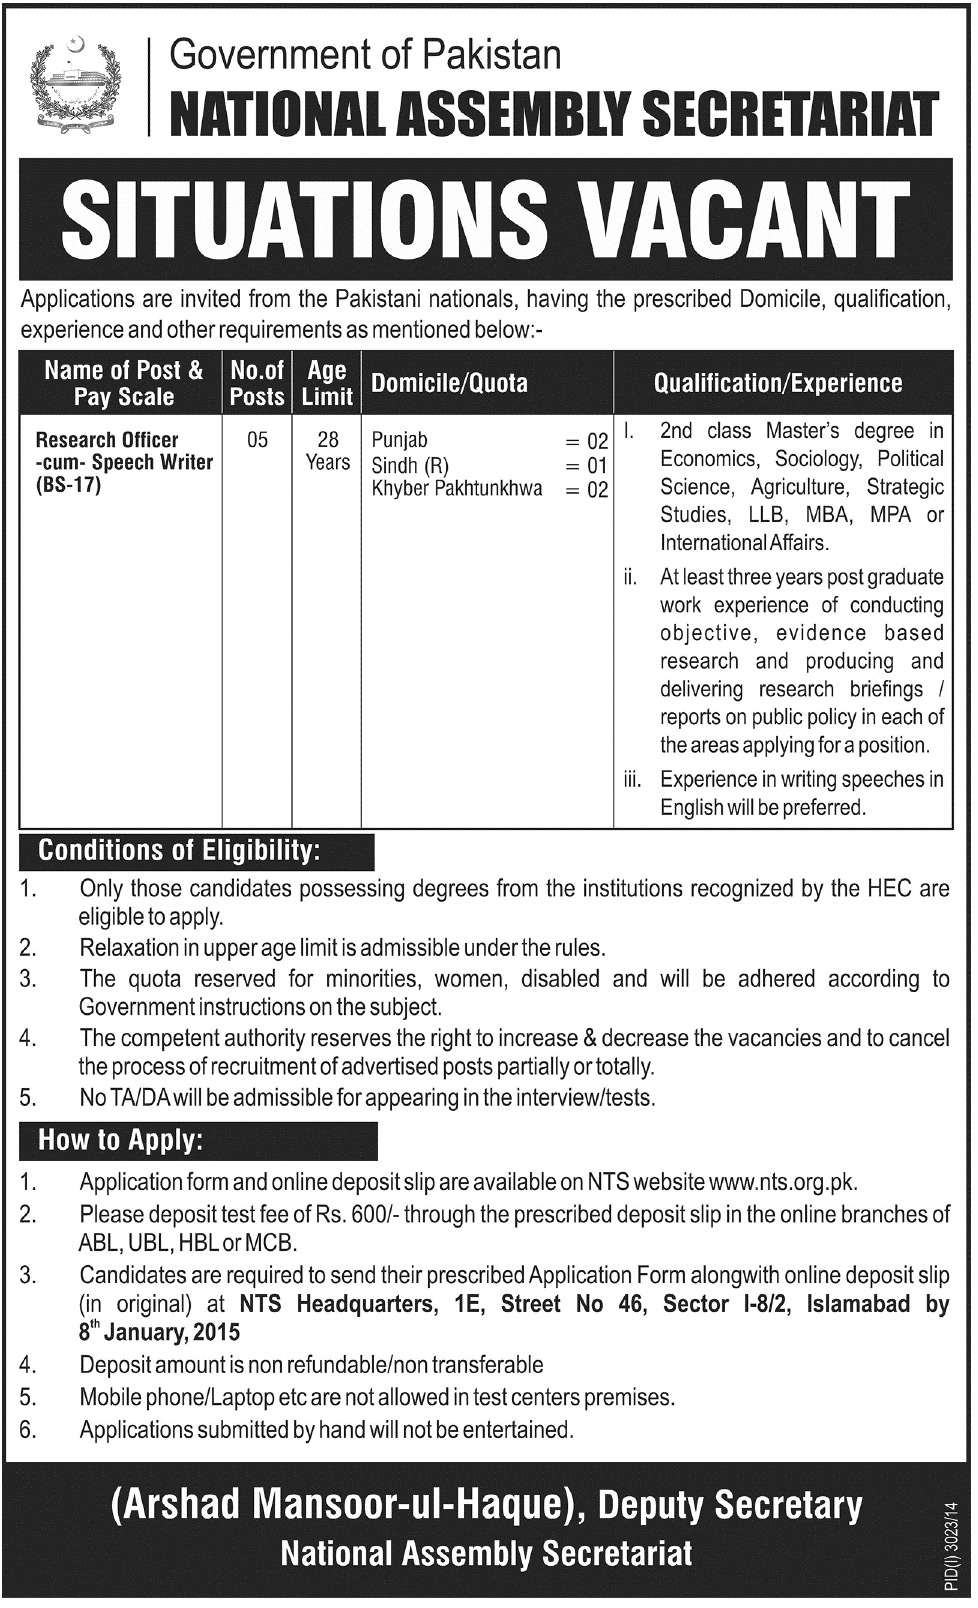 National Assembly Secretariat Research Officer Jobs 2014 NTS Form DateNational Assembly Secretariat Research Officer Jobs 2014 NTS Form Date